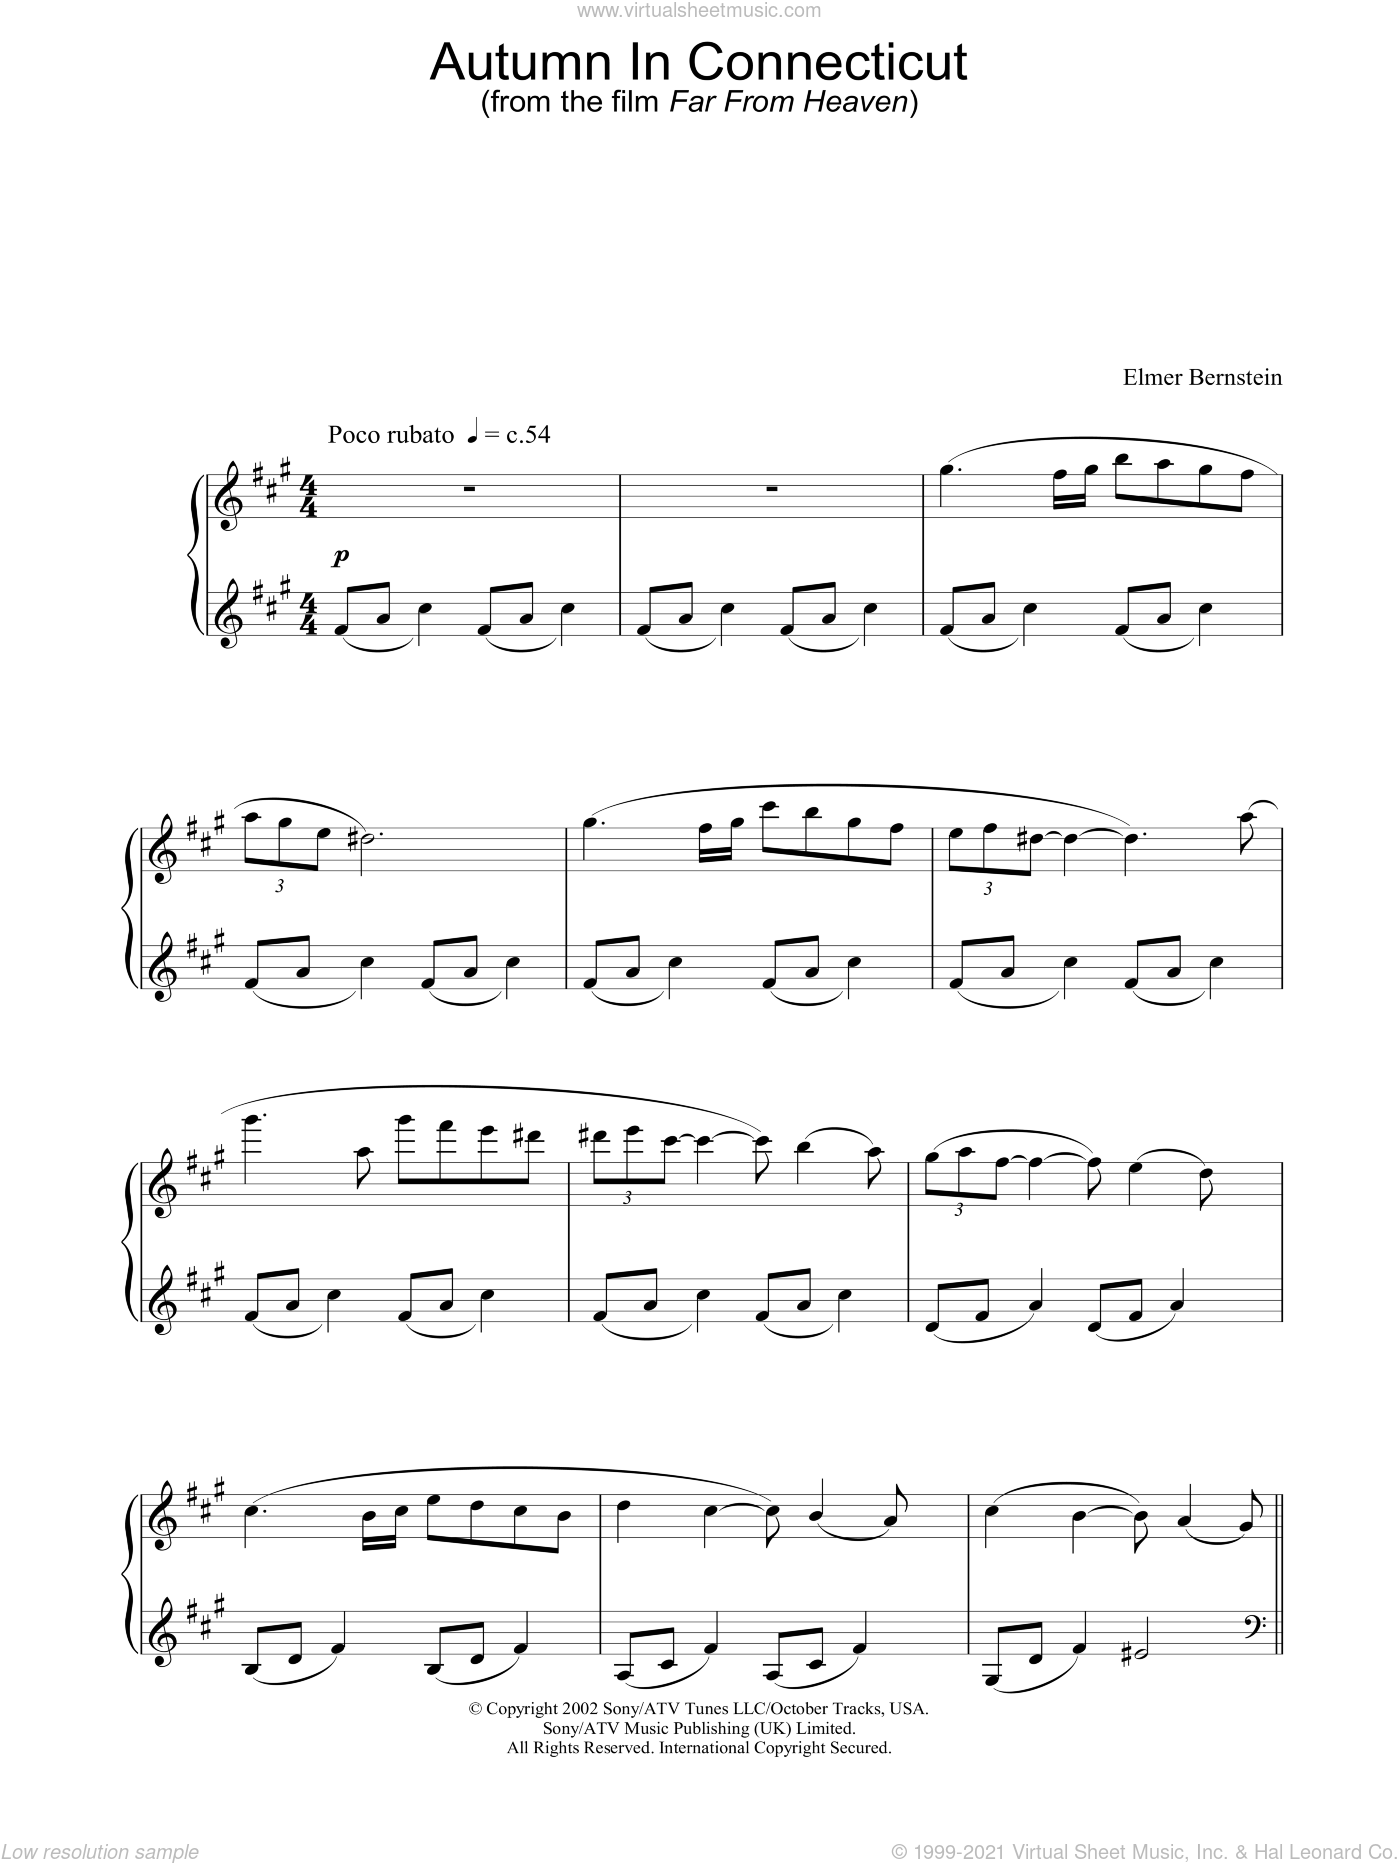 Autumn In Connecticut sheet music for piano solo by Elmer Bernstein